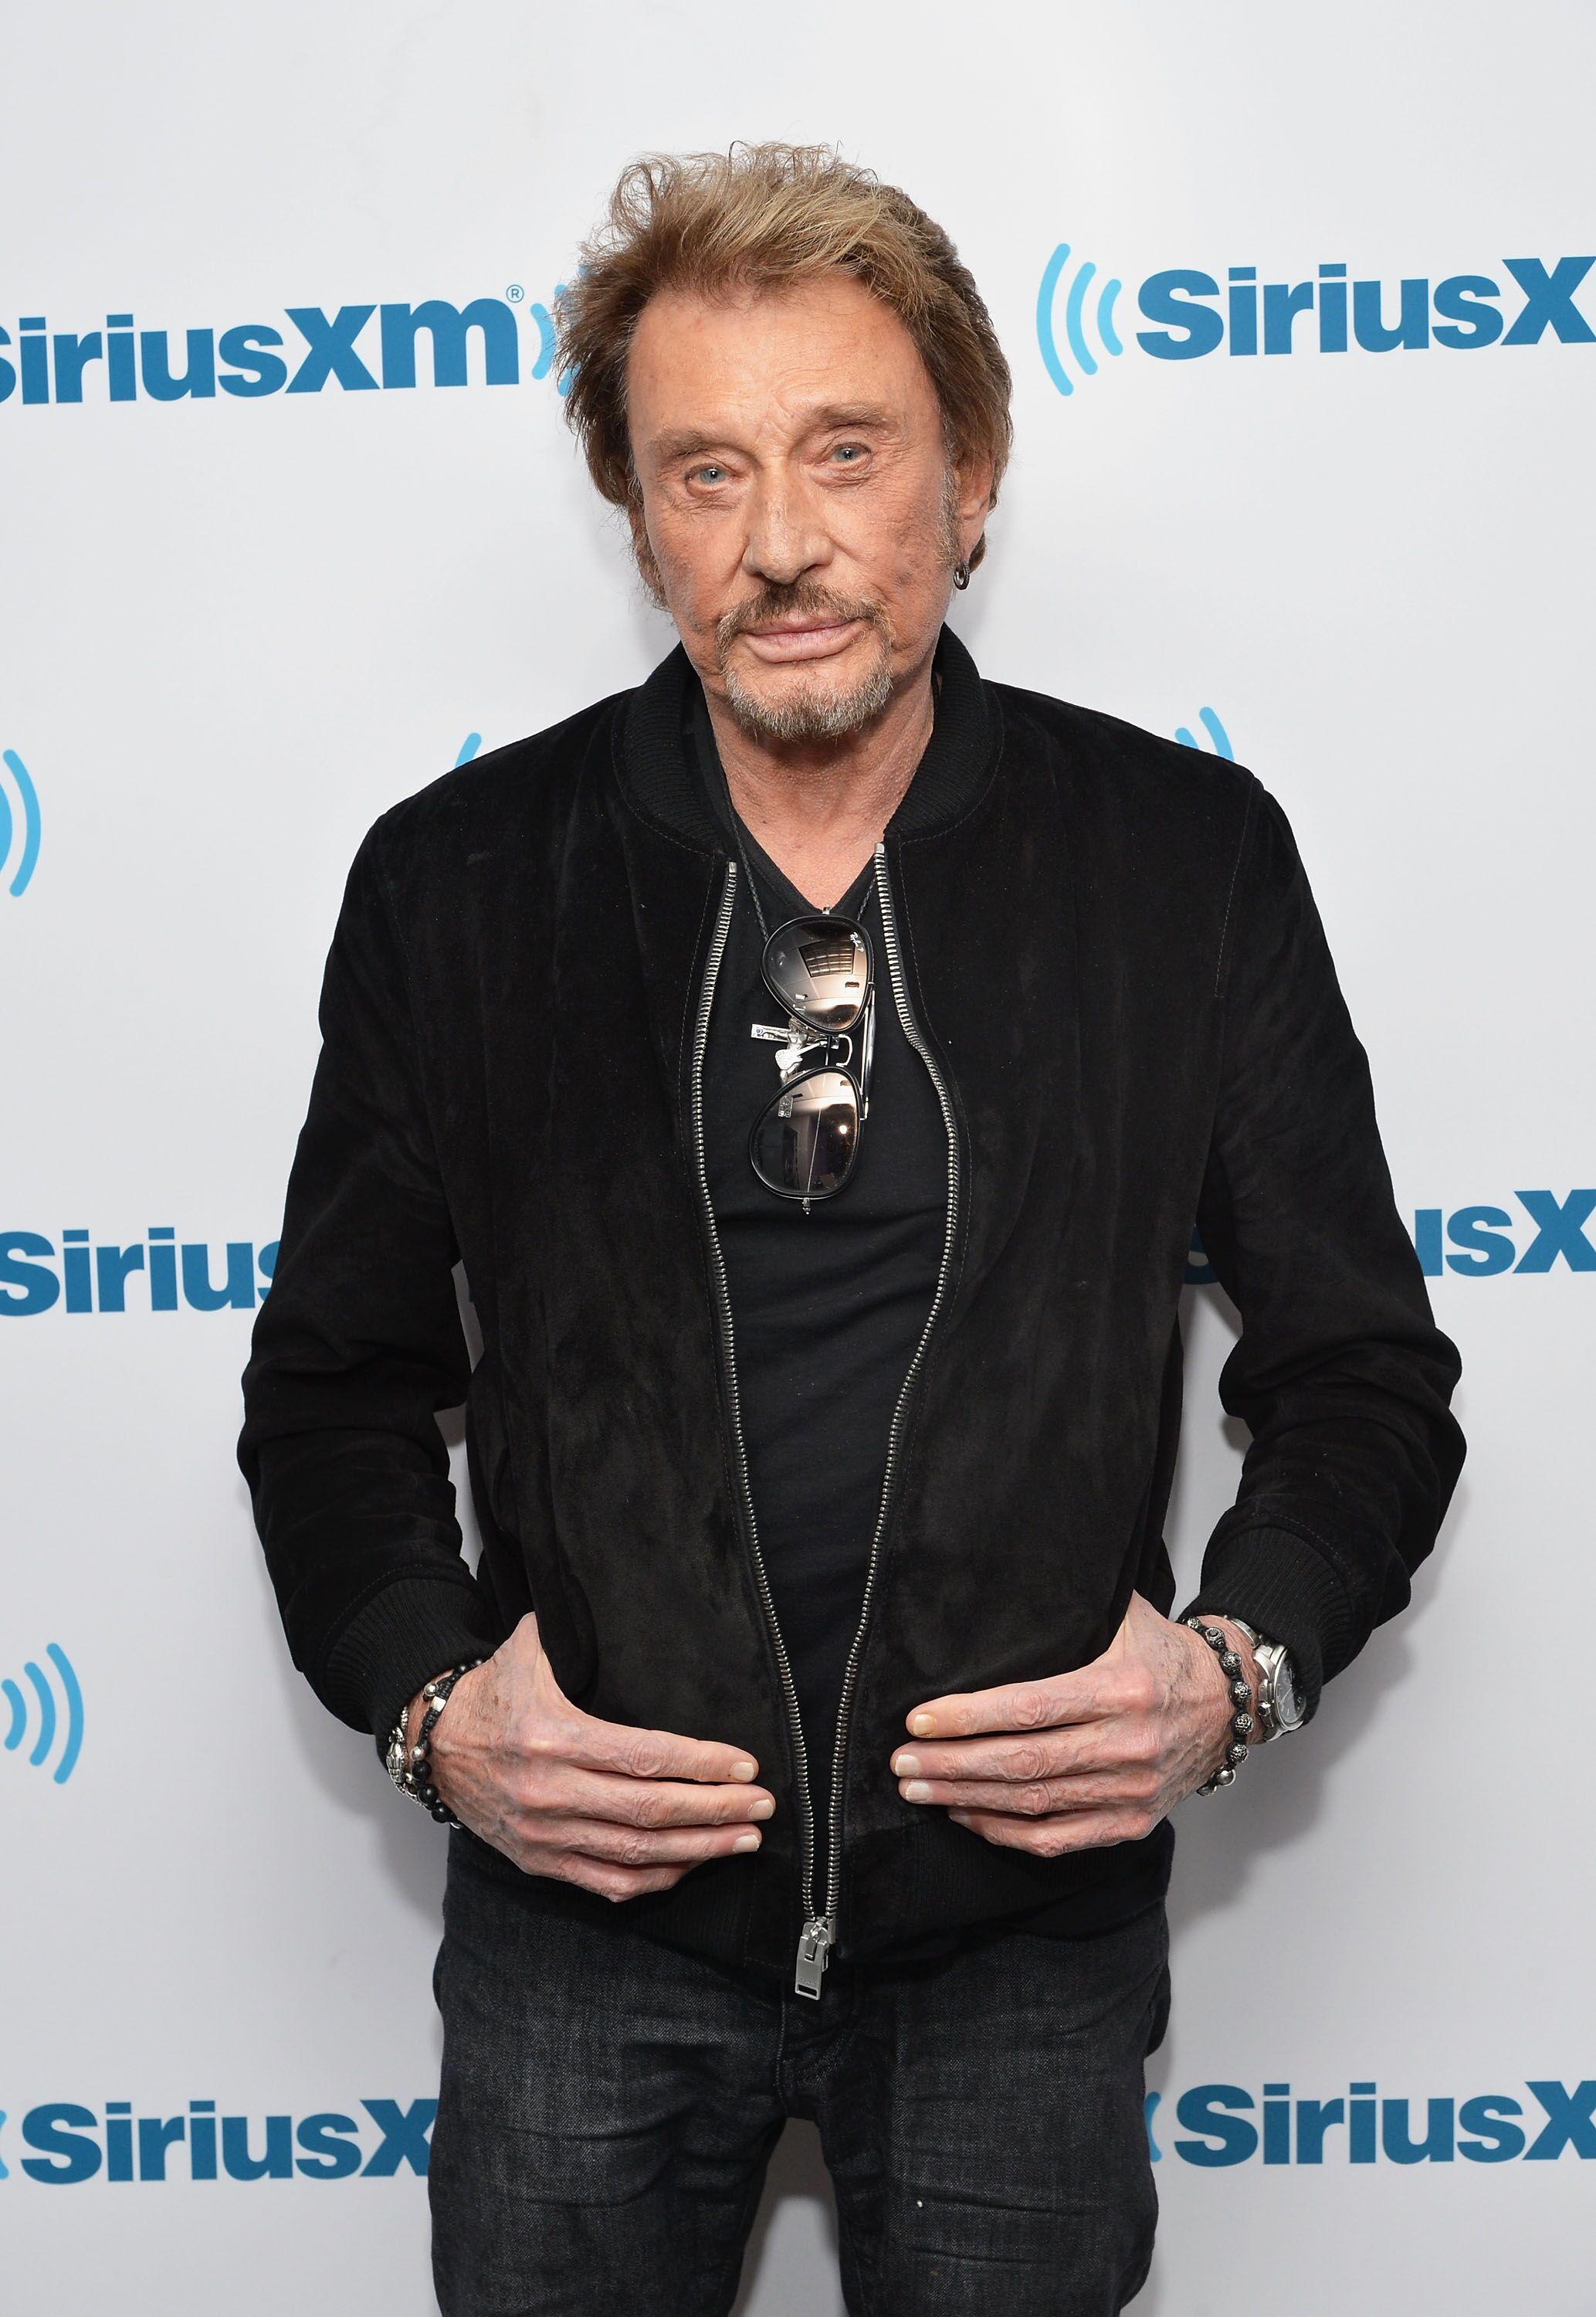 Le chanteur/acteur français Johnny Hallyday visite les studios SiriusXM le 5 mai 2014 à New York City. | Photo : Getty Images